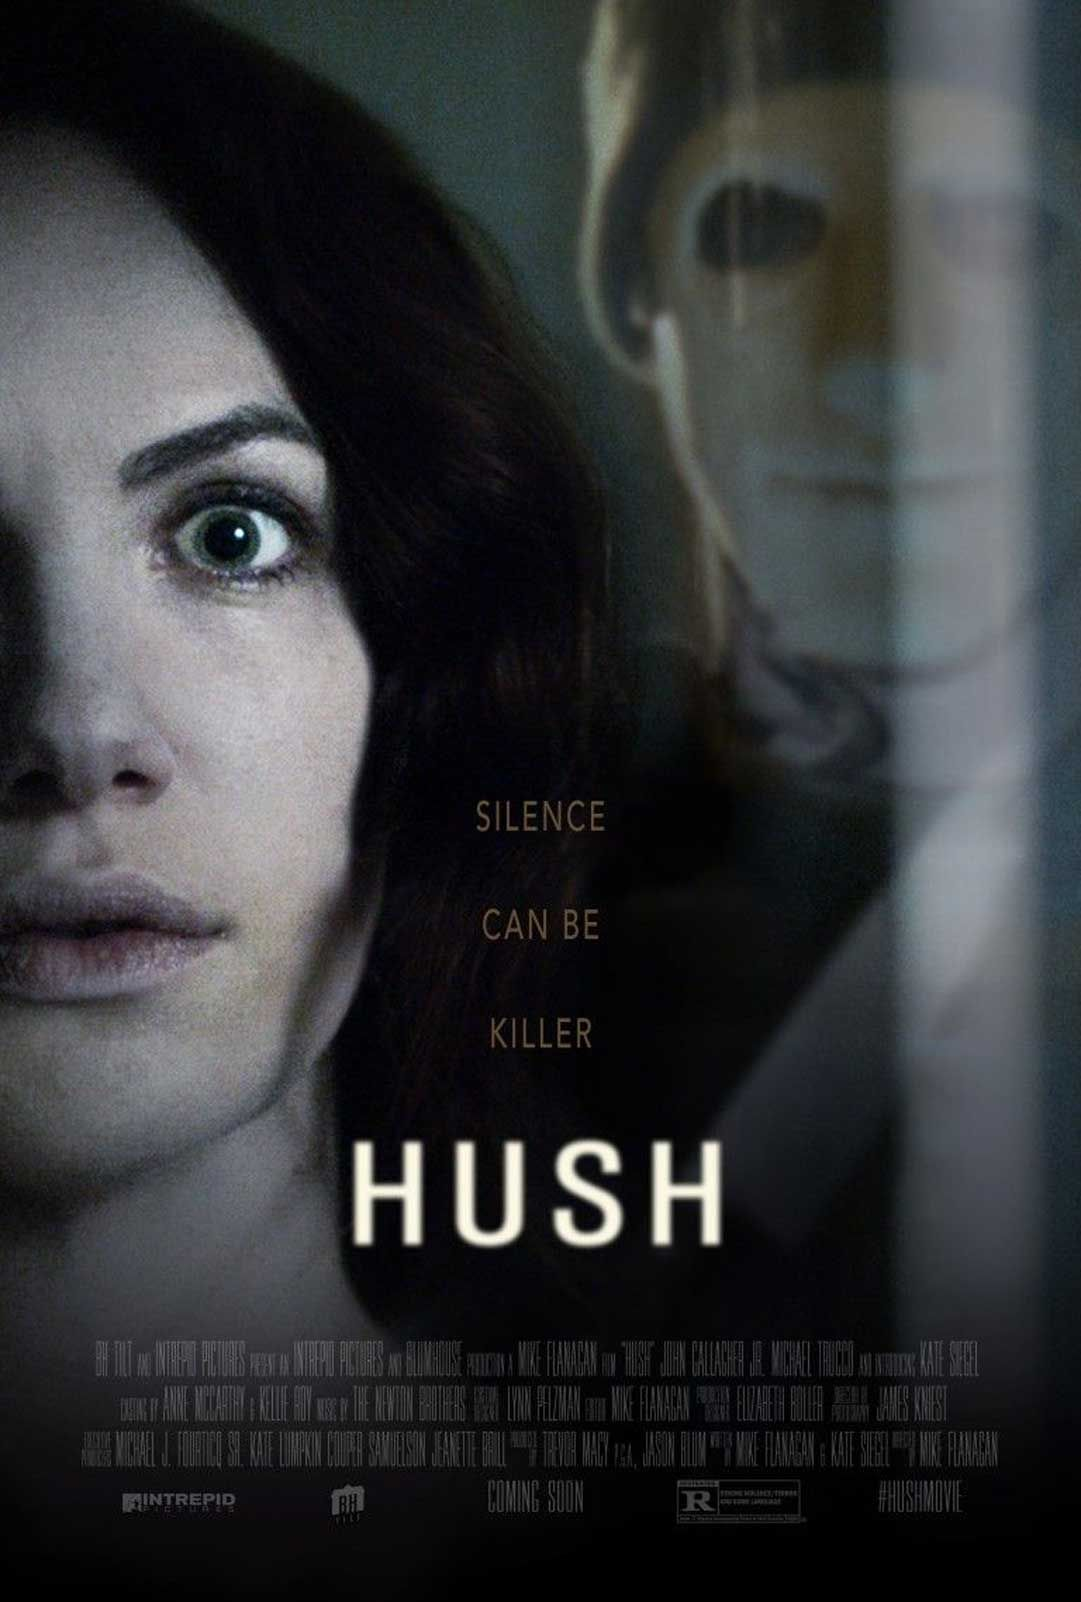 hush movie review acting the edge and thrillers hush 2016 movie review